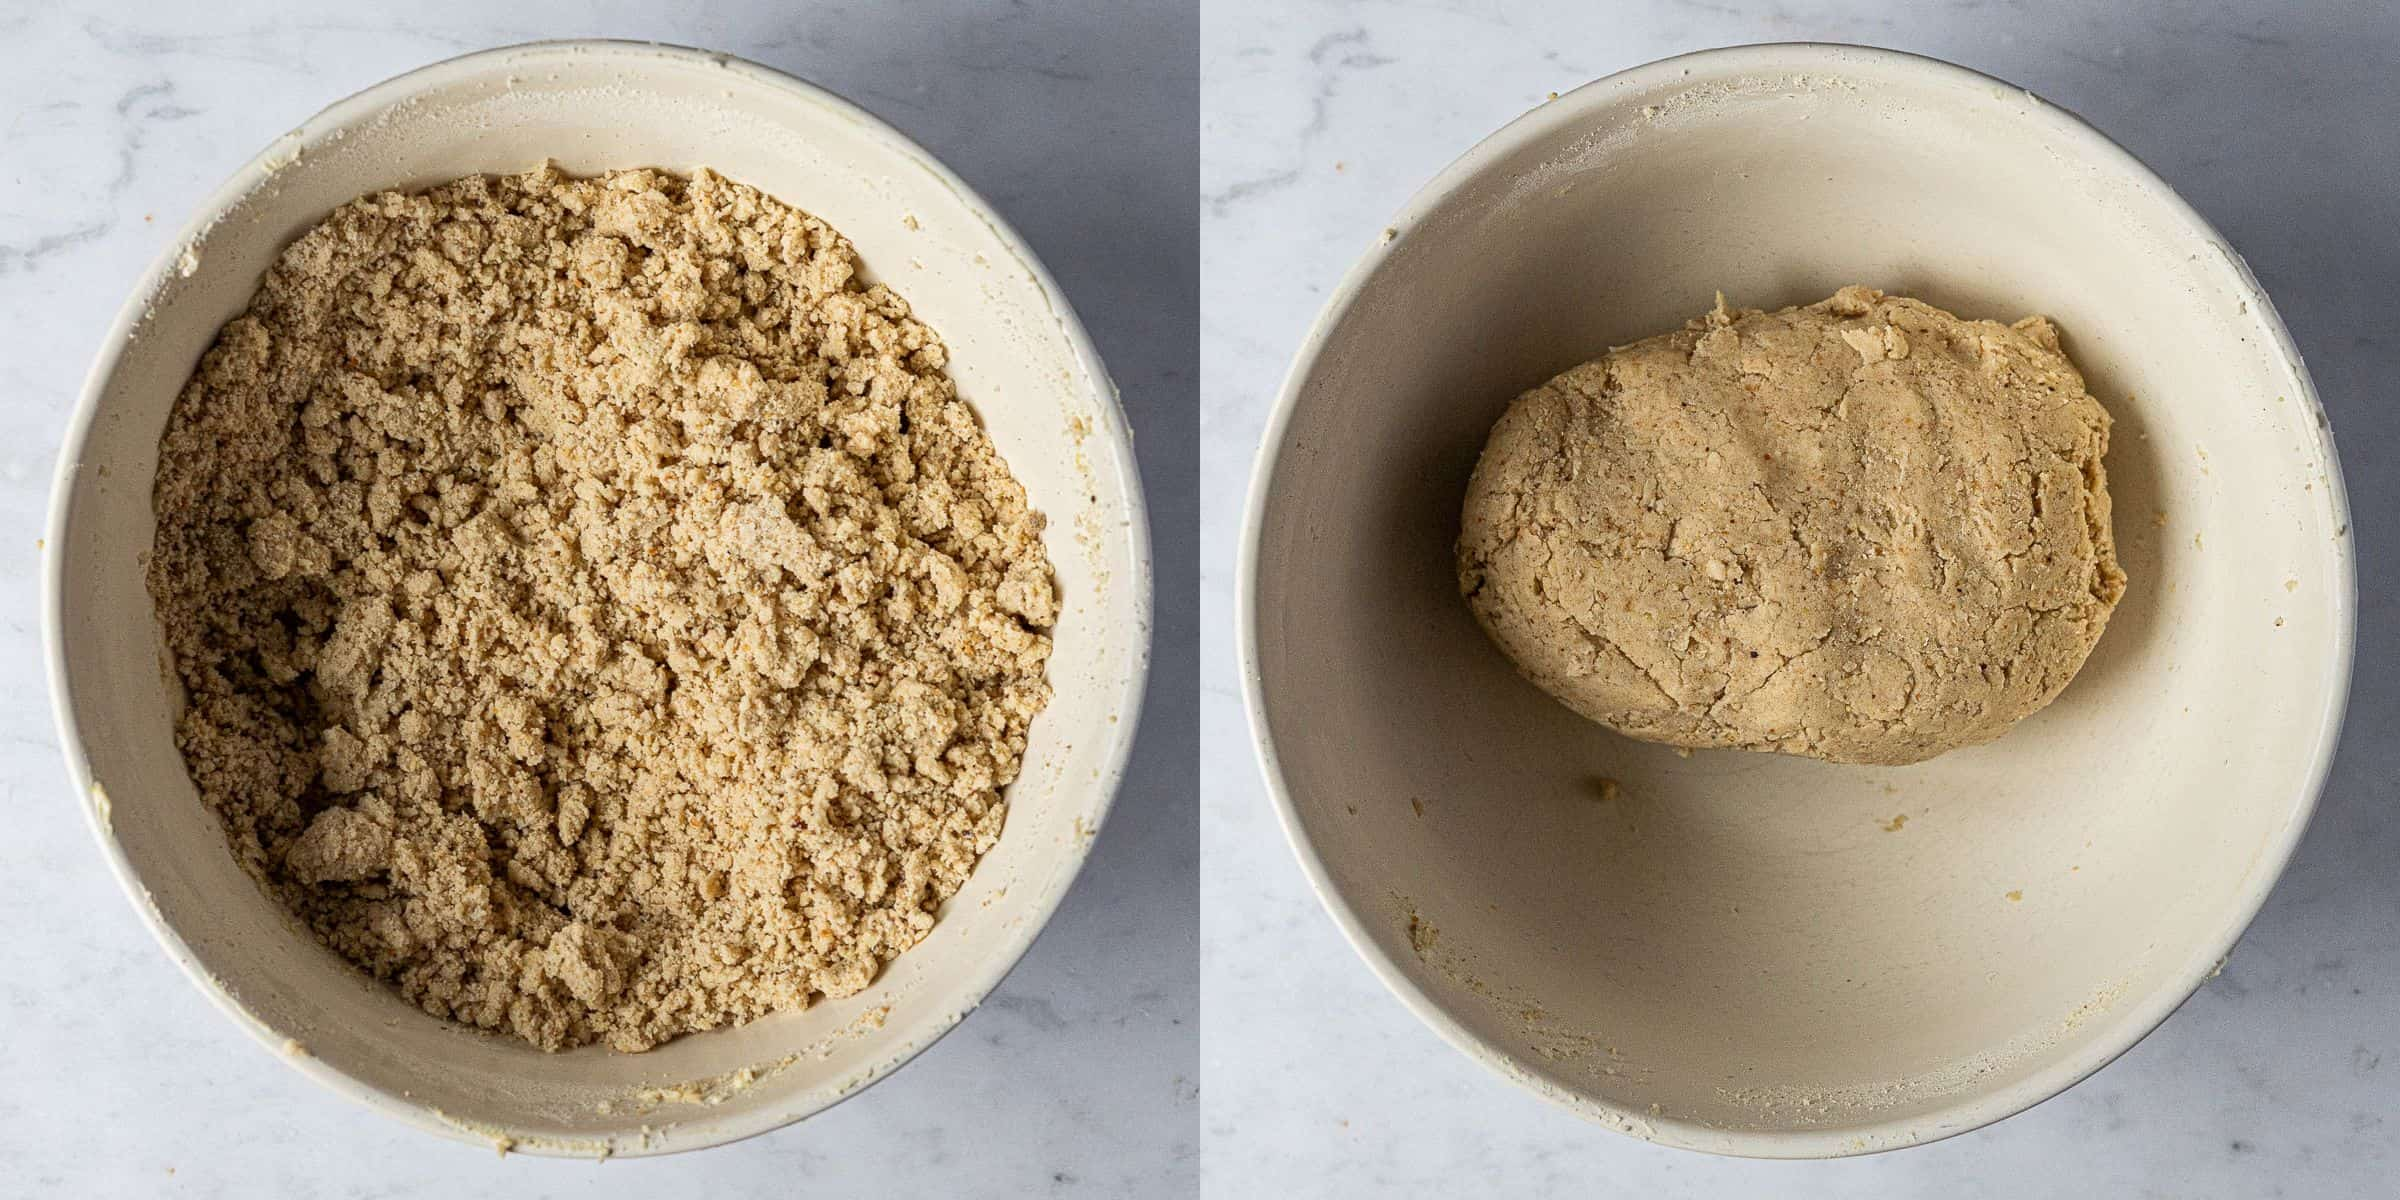 Step 2, a two image collage of making the dough.